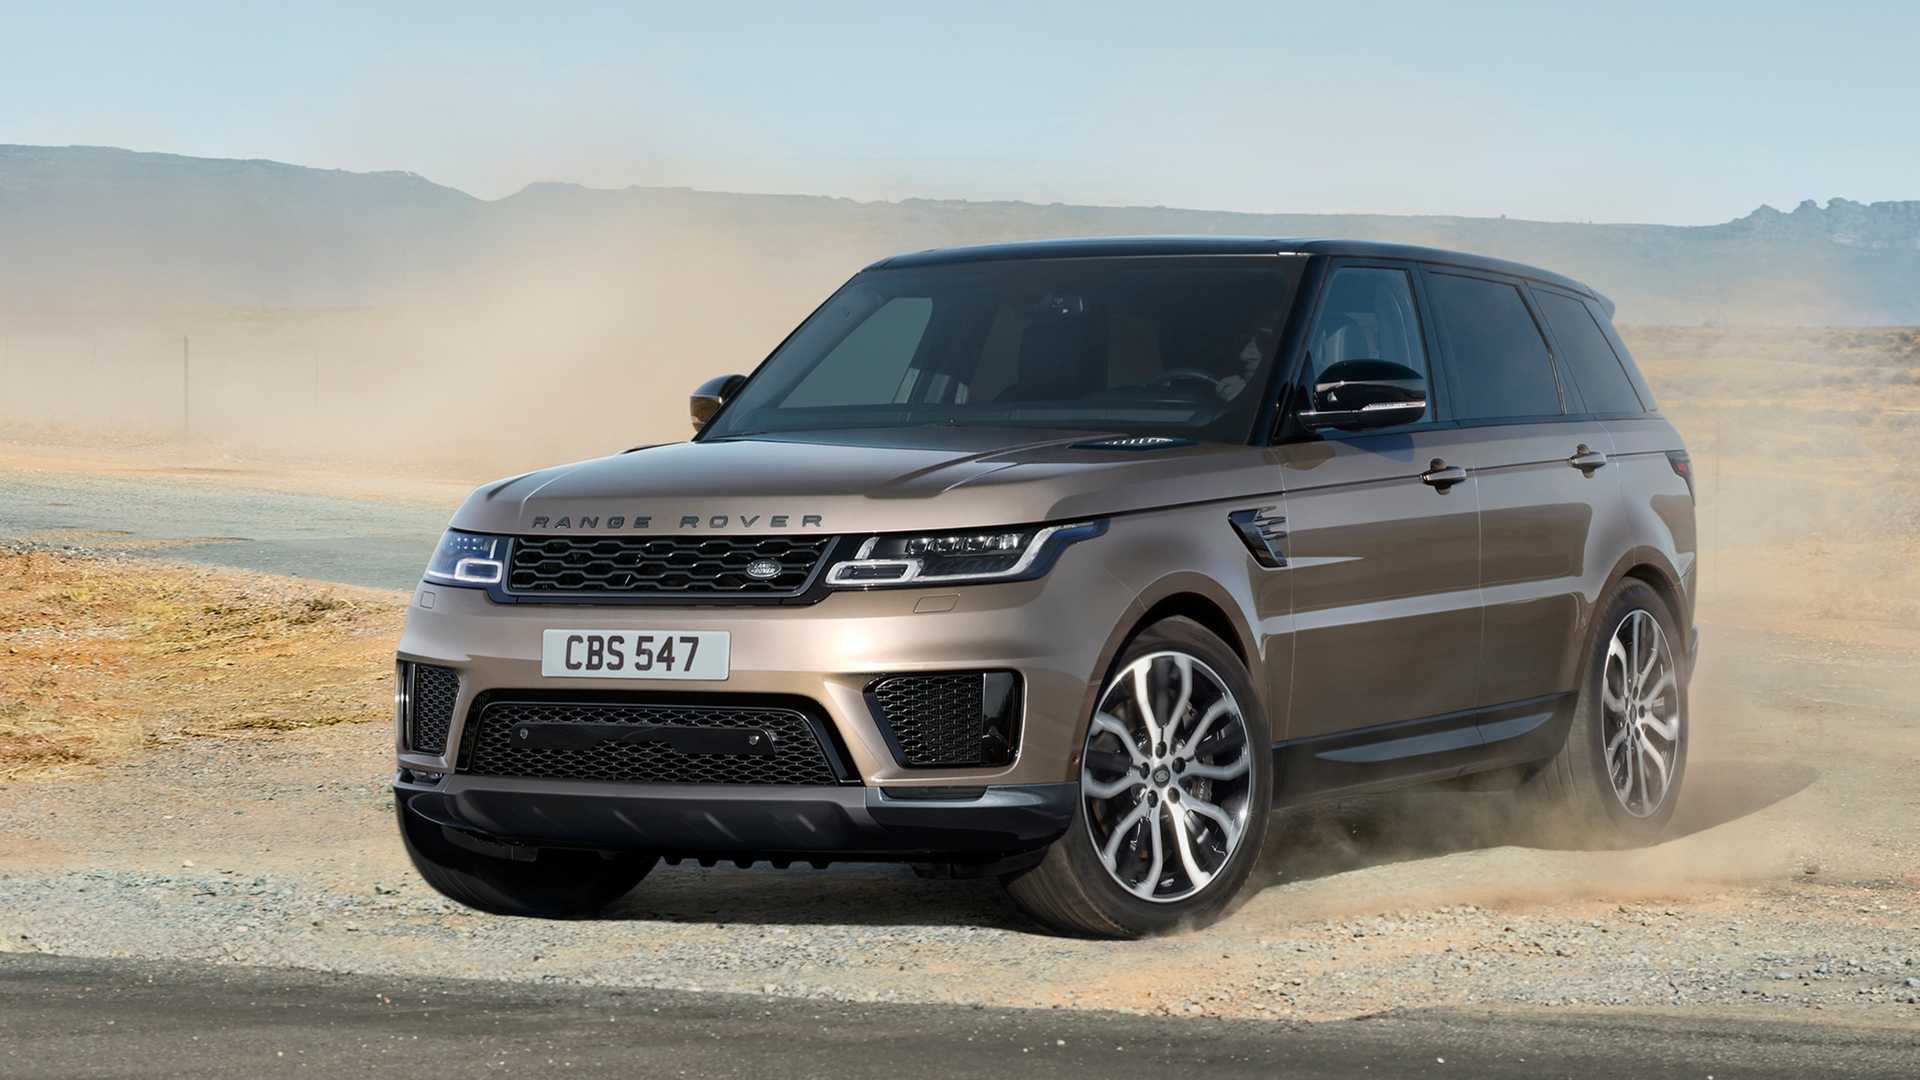 2021 Land rover range rover sport hse suv front view